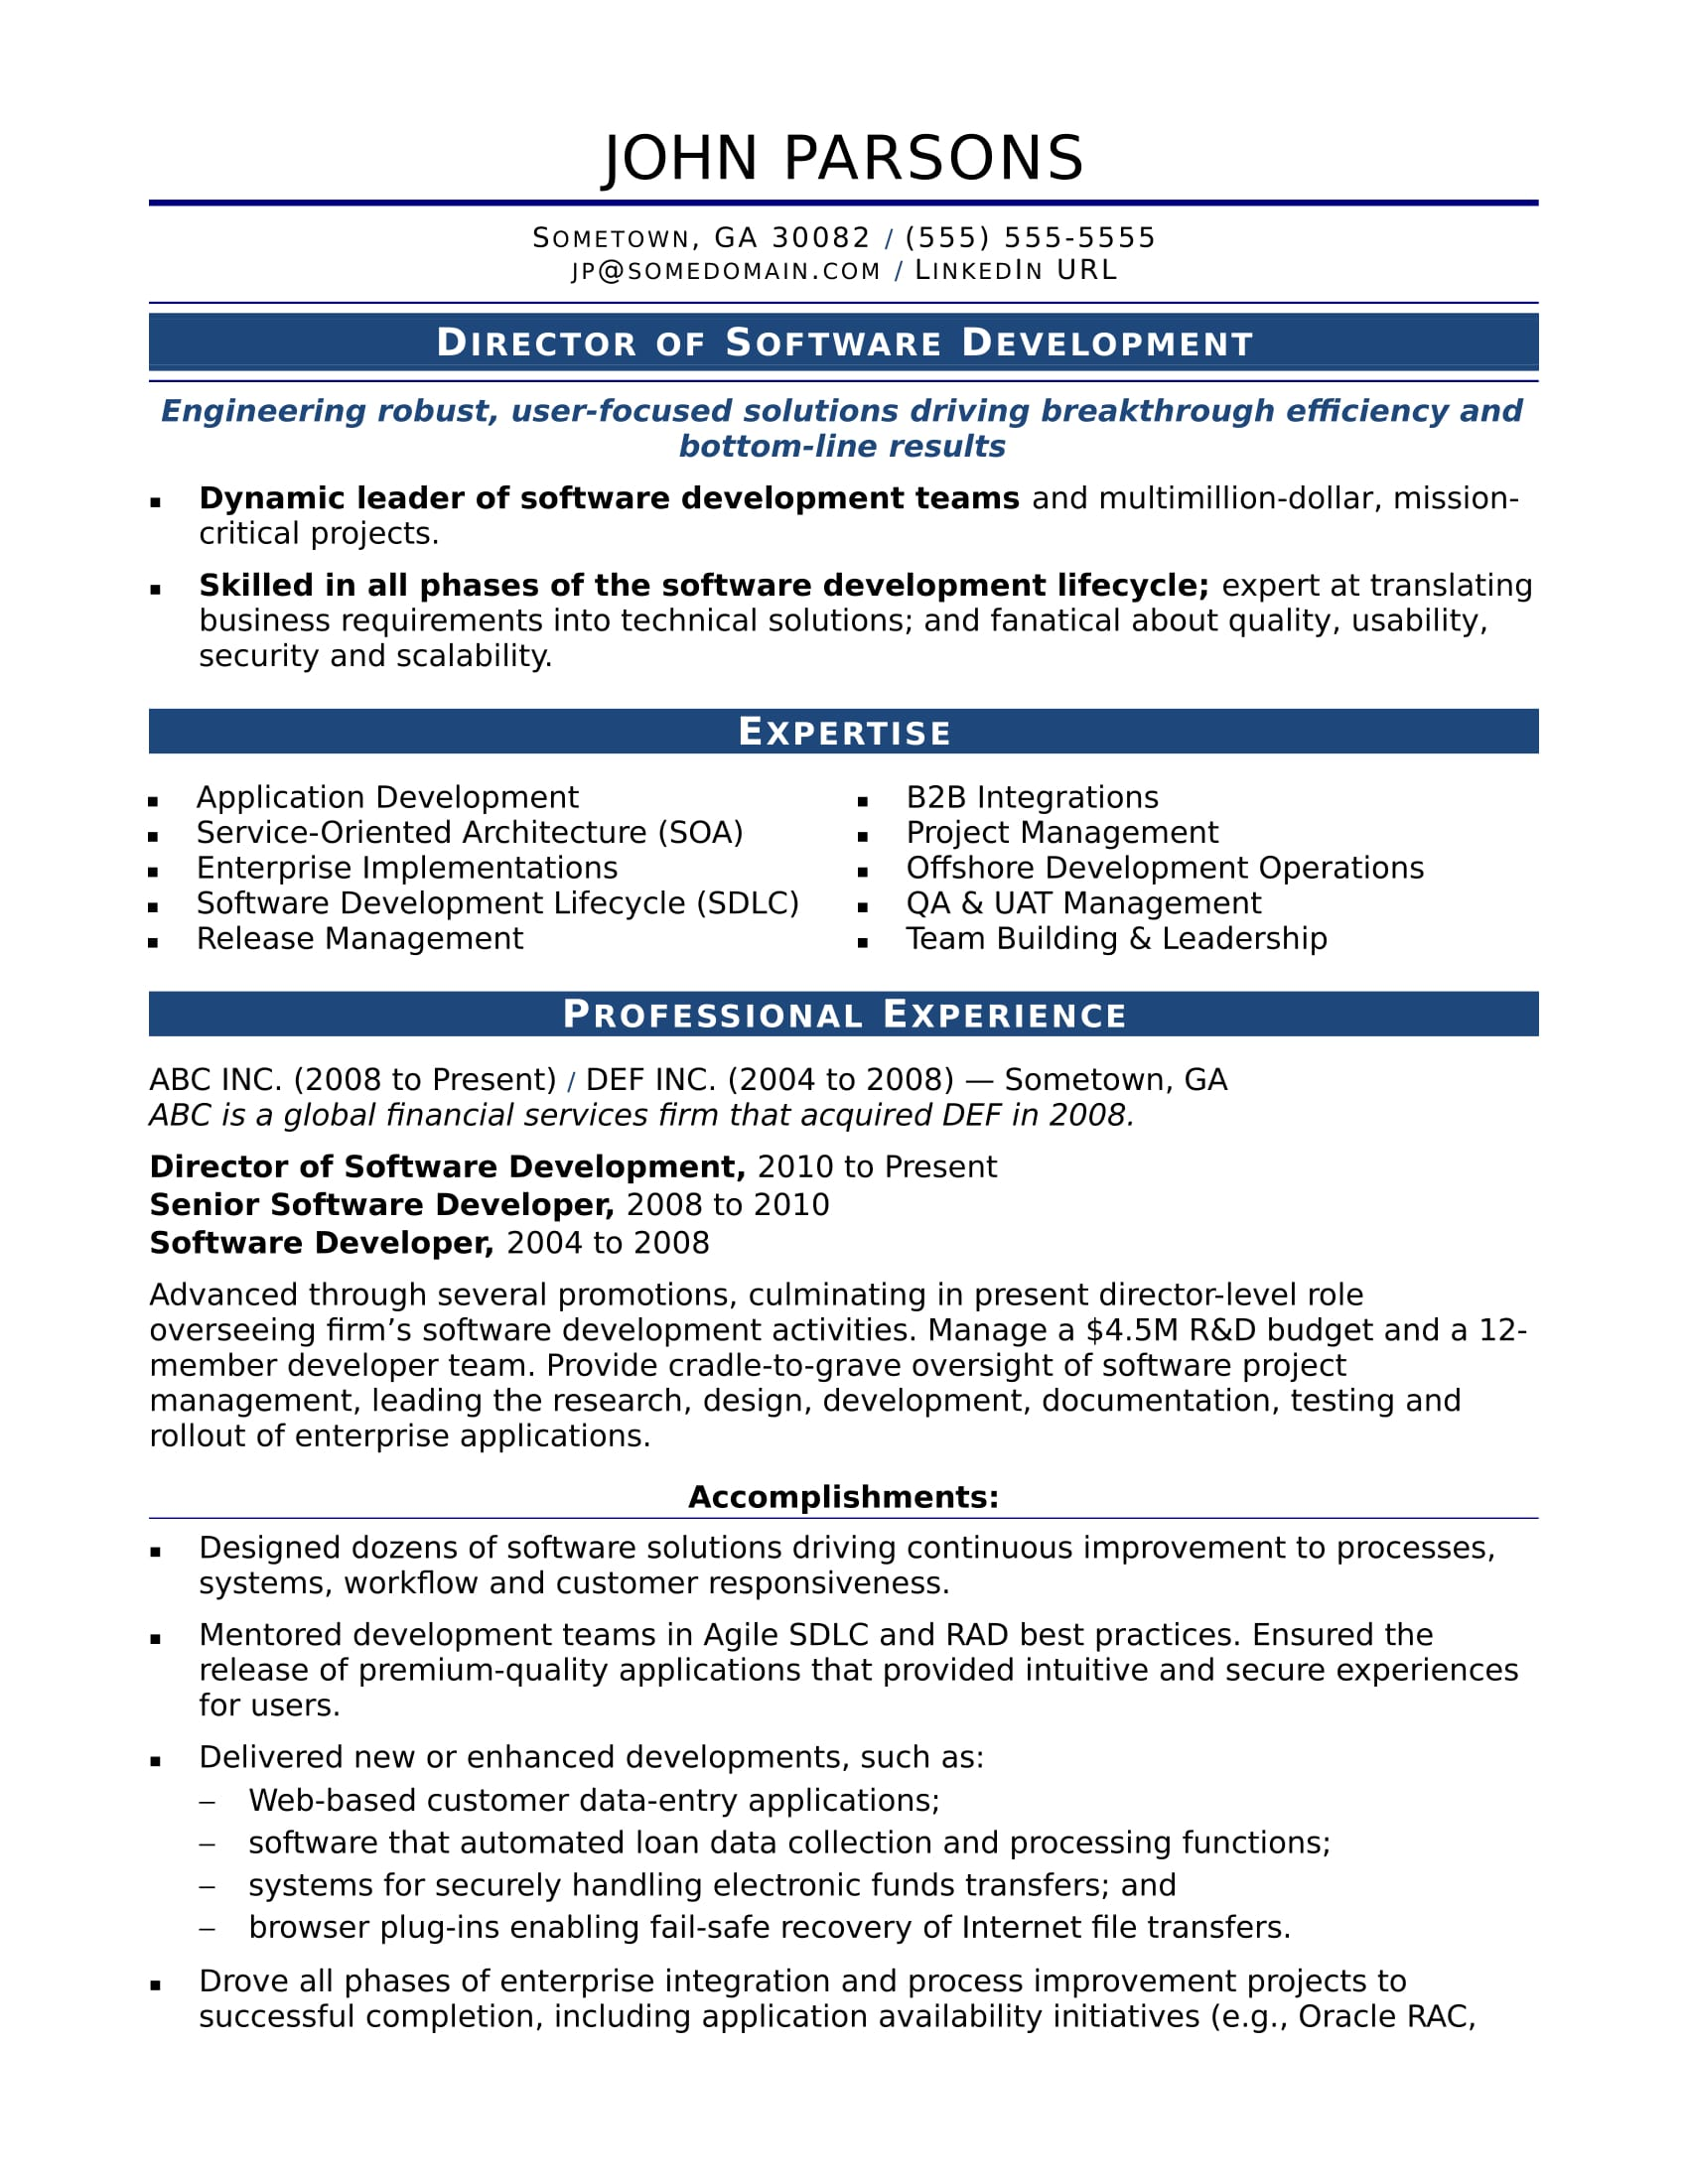 sample resume for an experienced it developer - Sample Software Engineer Resume